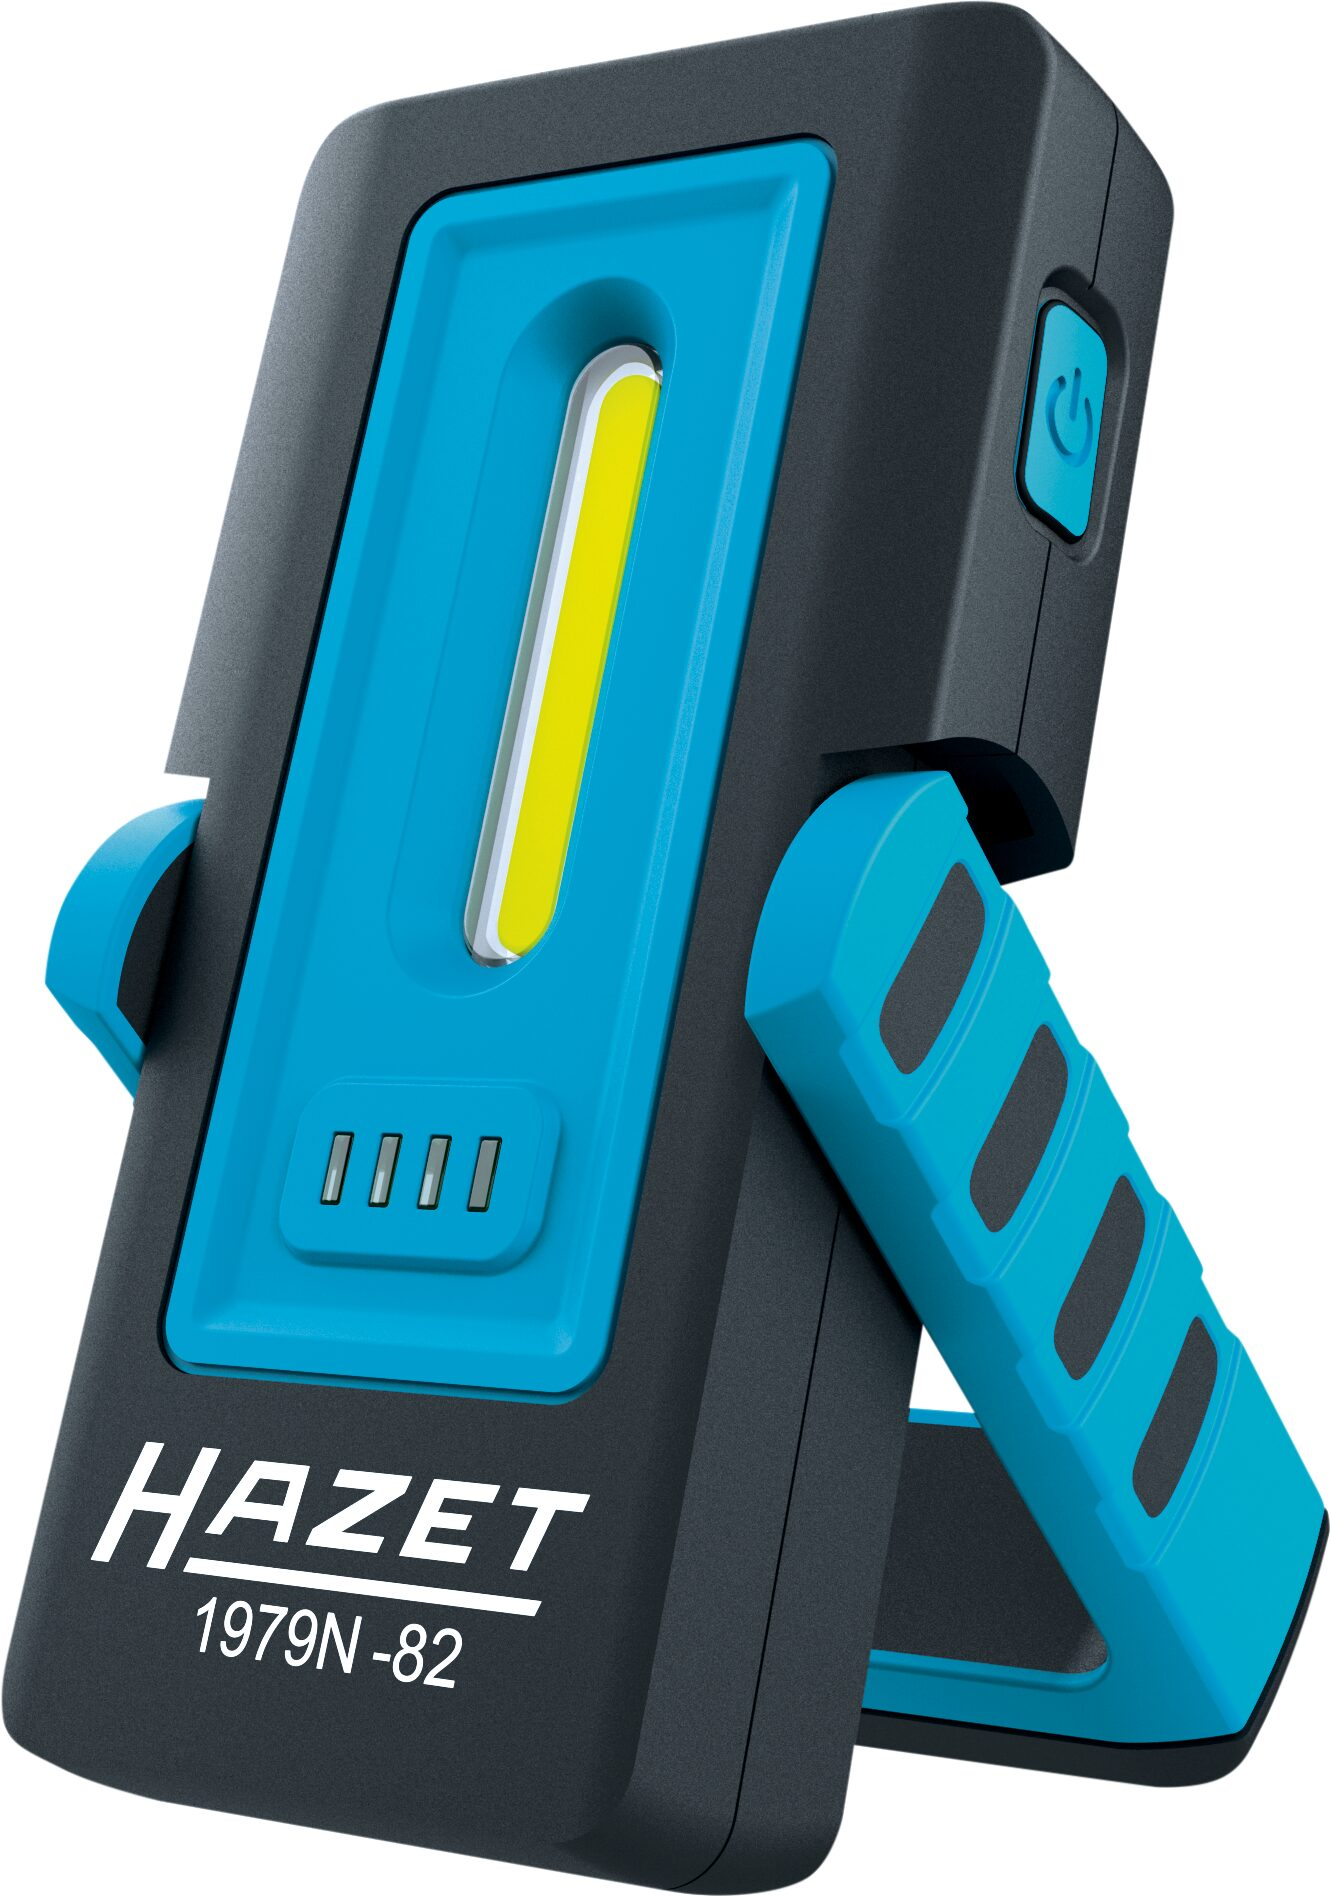 HAZET LED Pocket Light 1979N-82